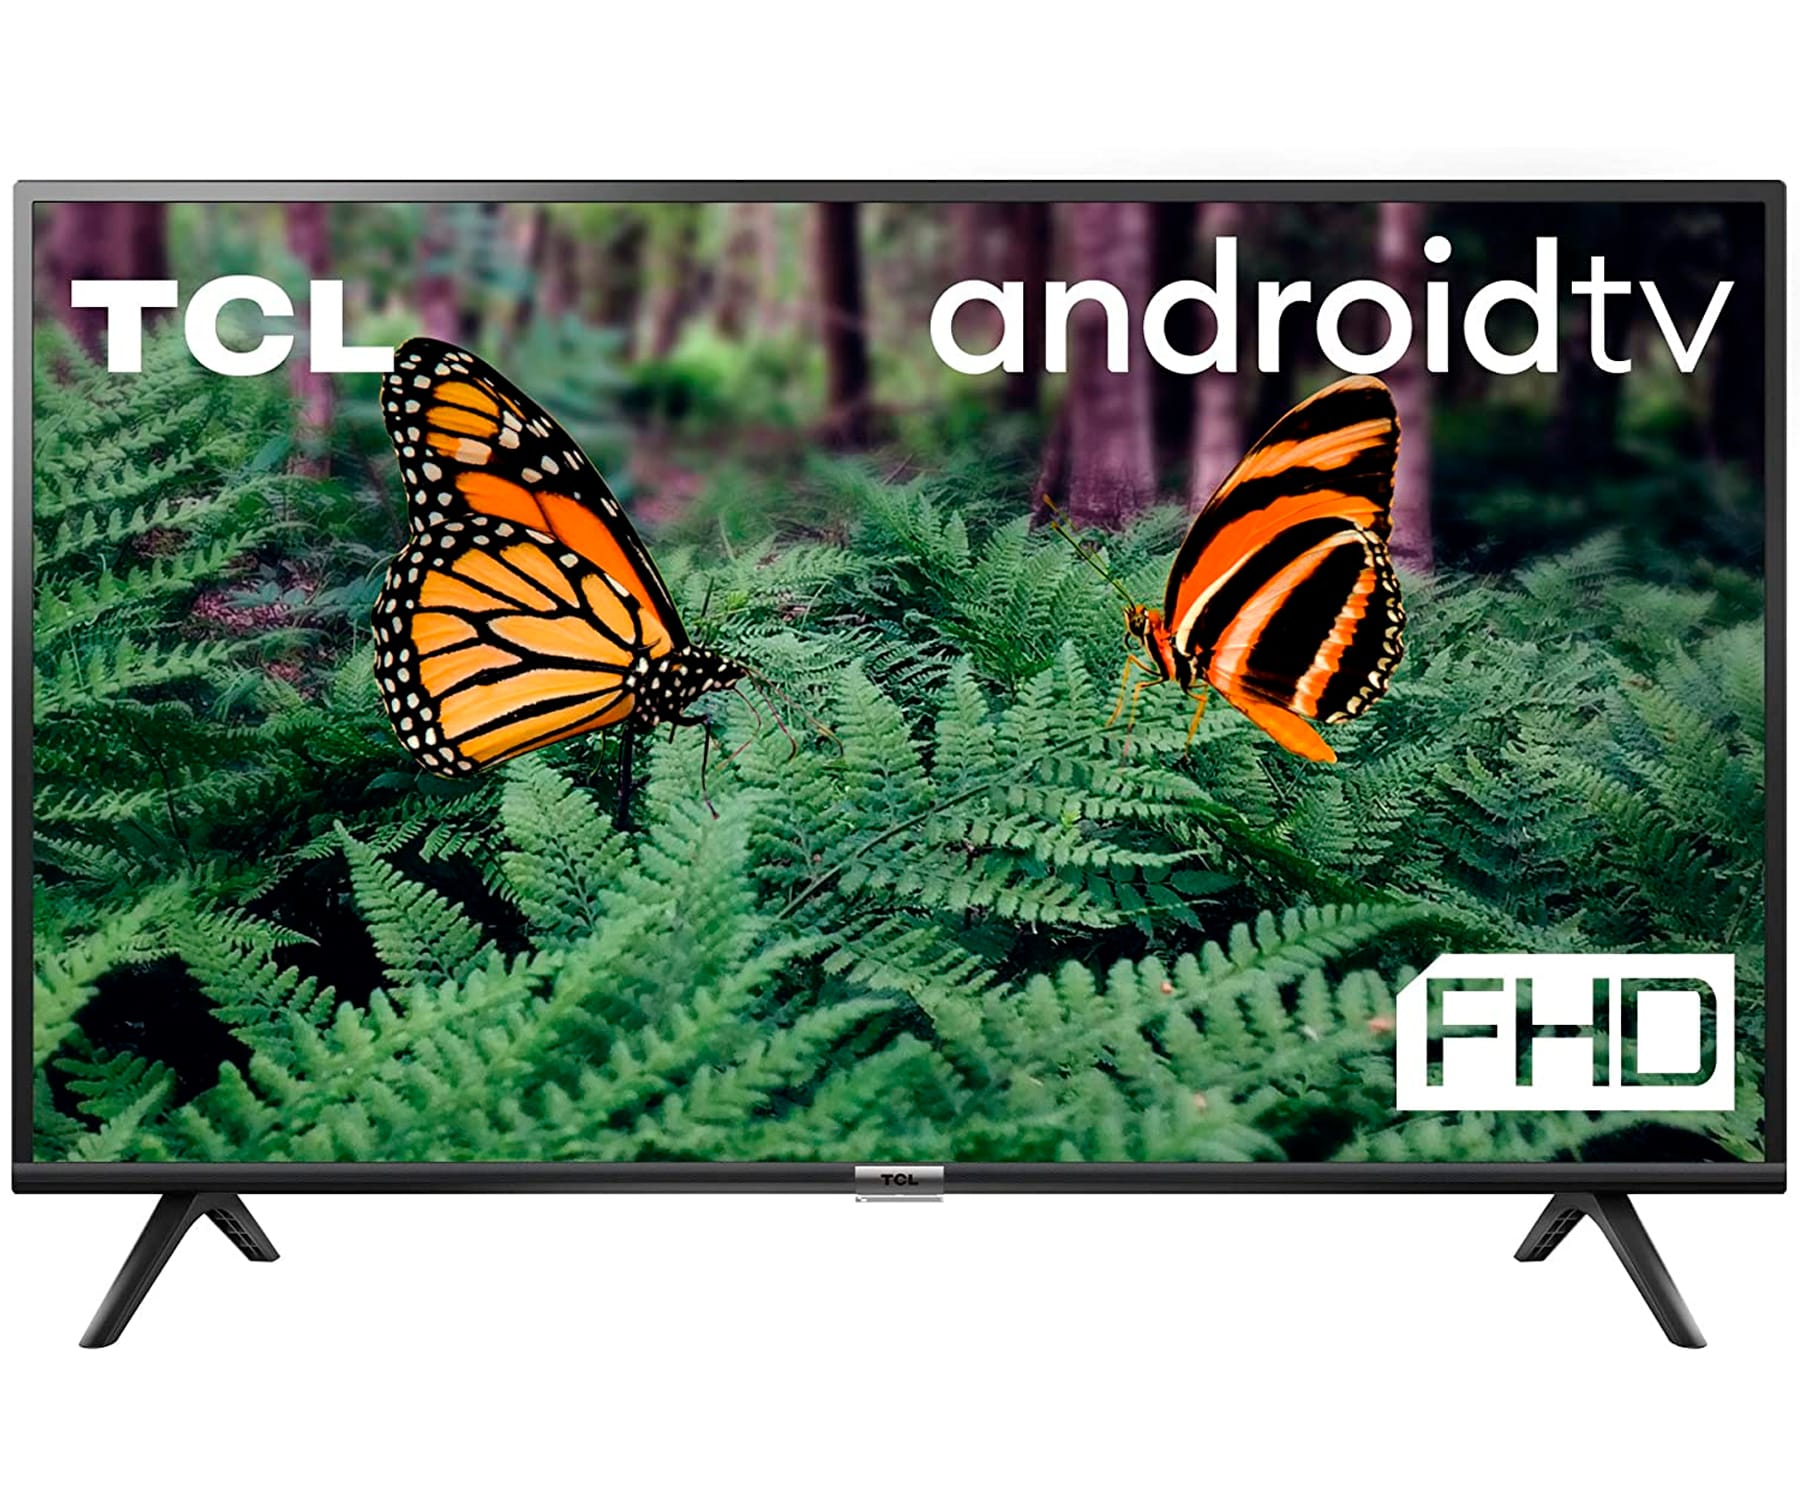 TCL 40ES560 TV 40''/FHD/Smart TV/Android 9.0/Dolby Digital/WiFi